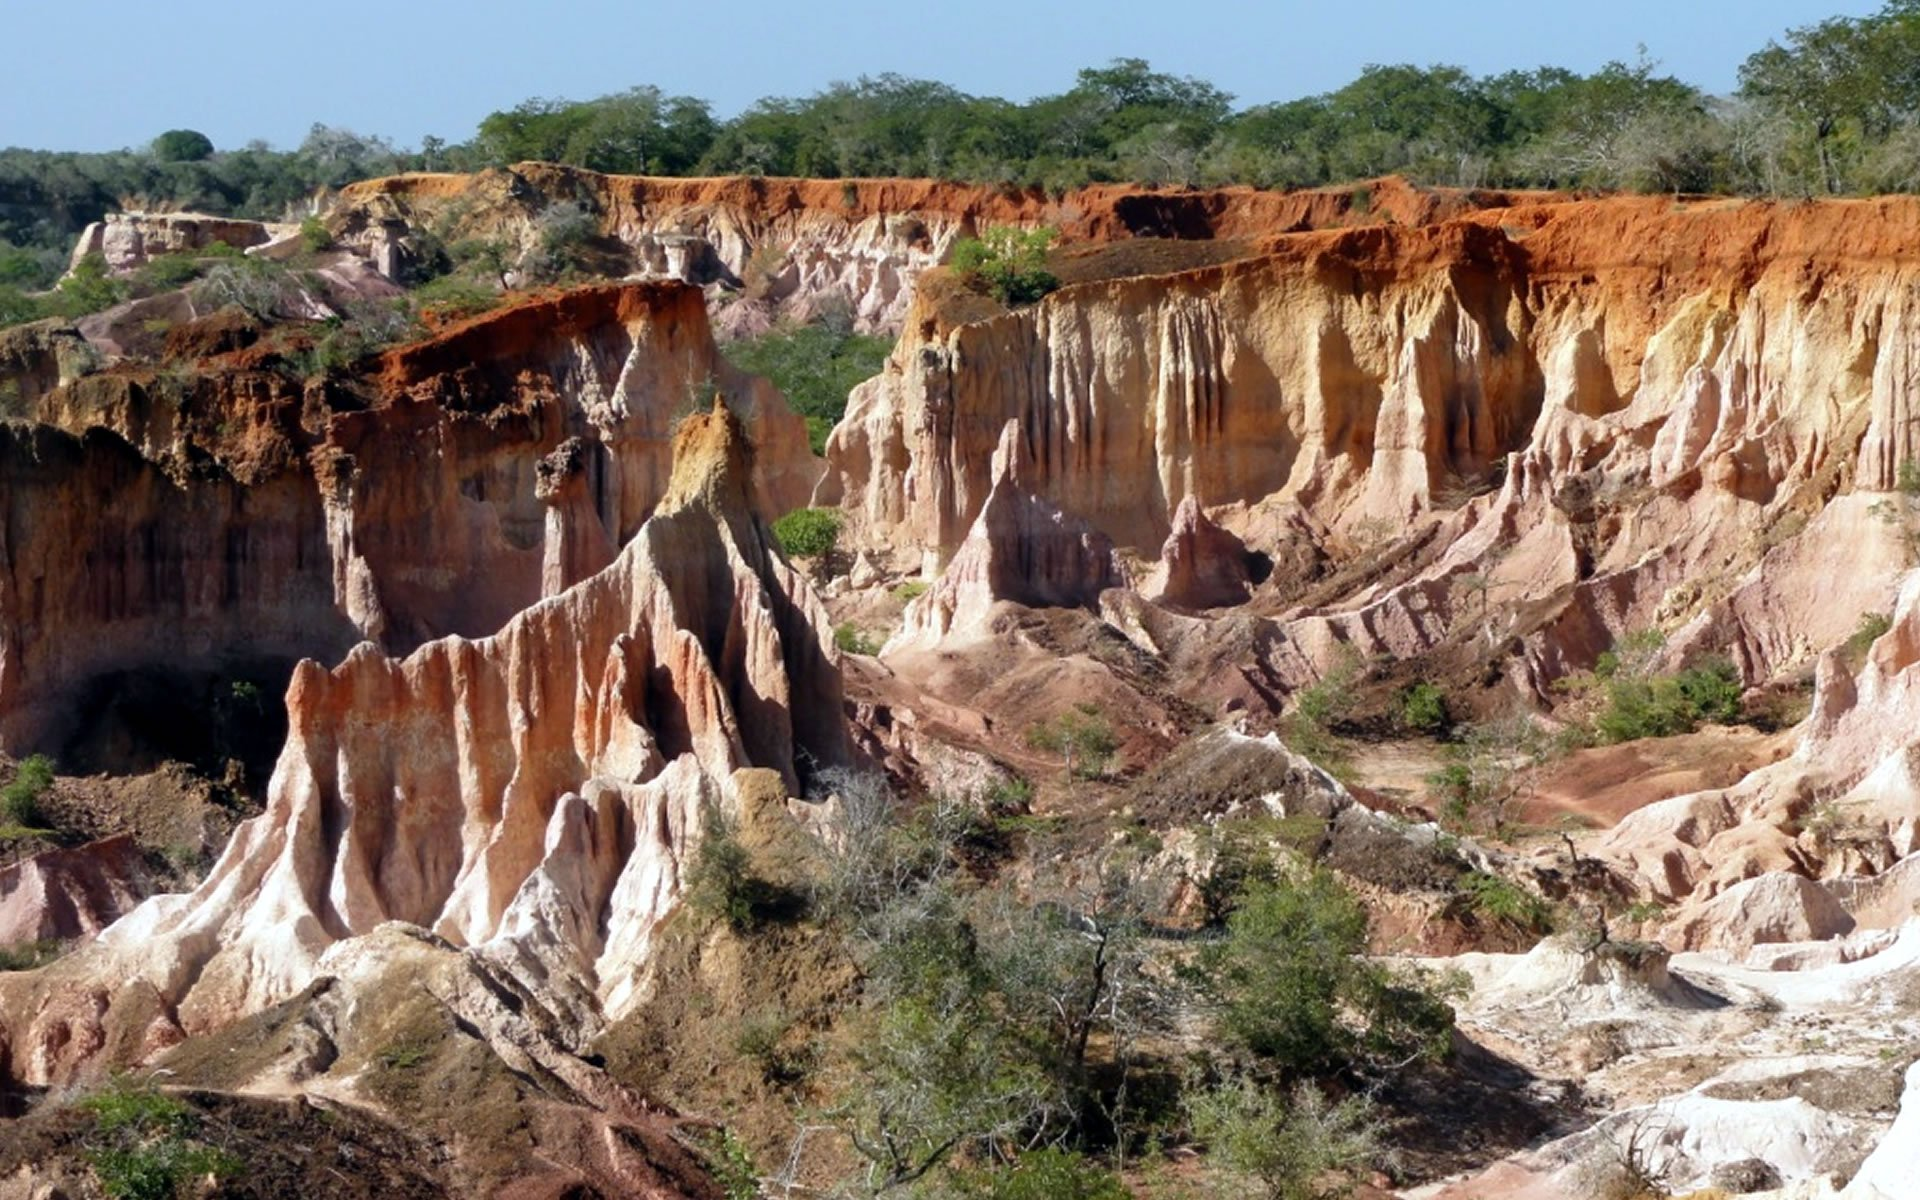 Marafa Depression, also known as the Devil's Kitchen or Nyari (The Place Broken by Itself), is an outstanding site of stalactites and stalagmites formed on limestone rock due to internal geological forces of denudation.